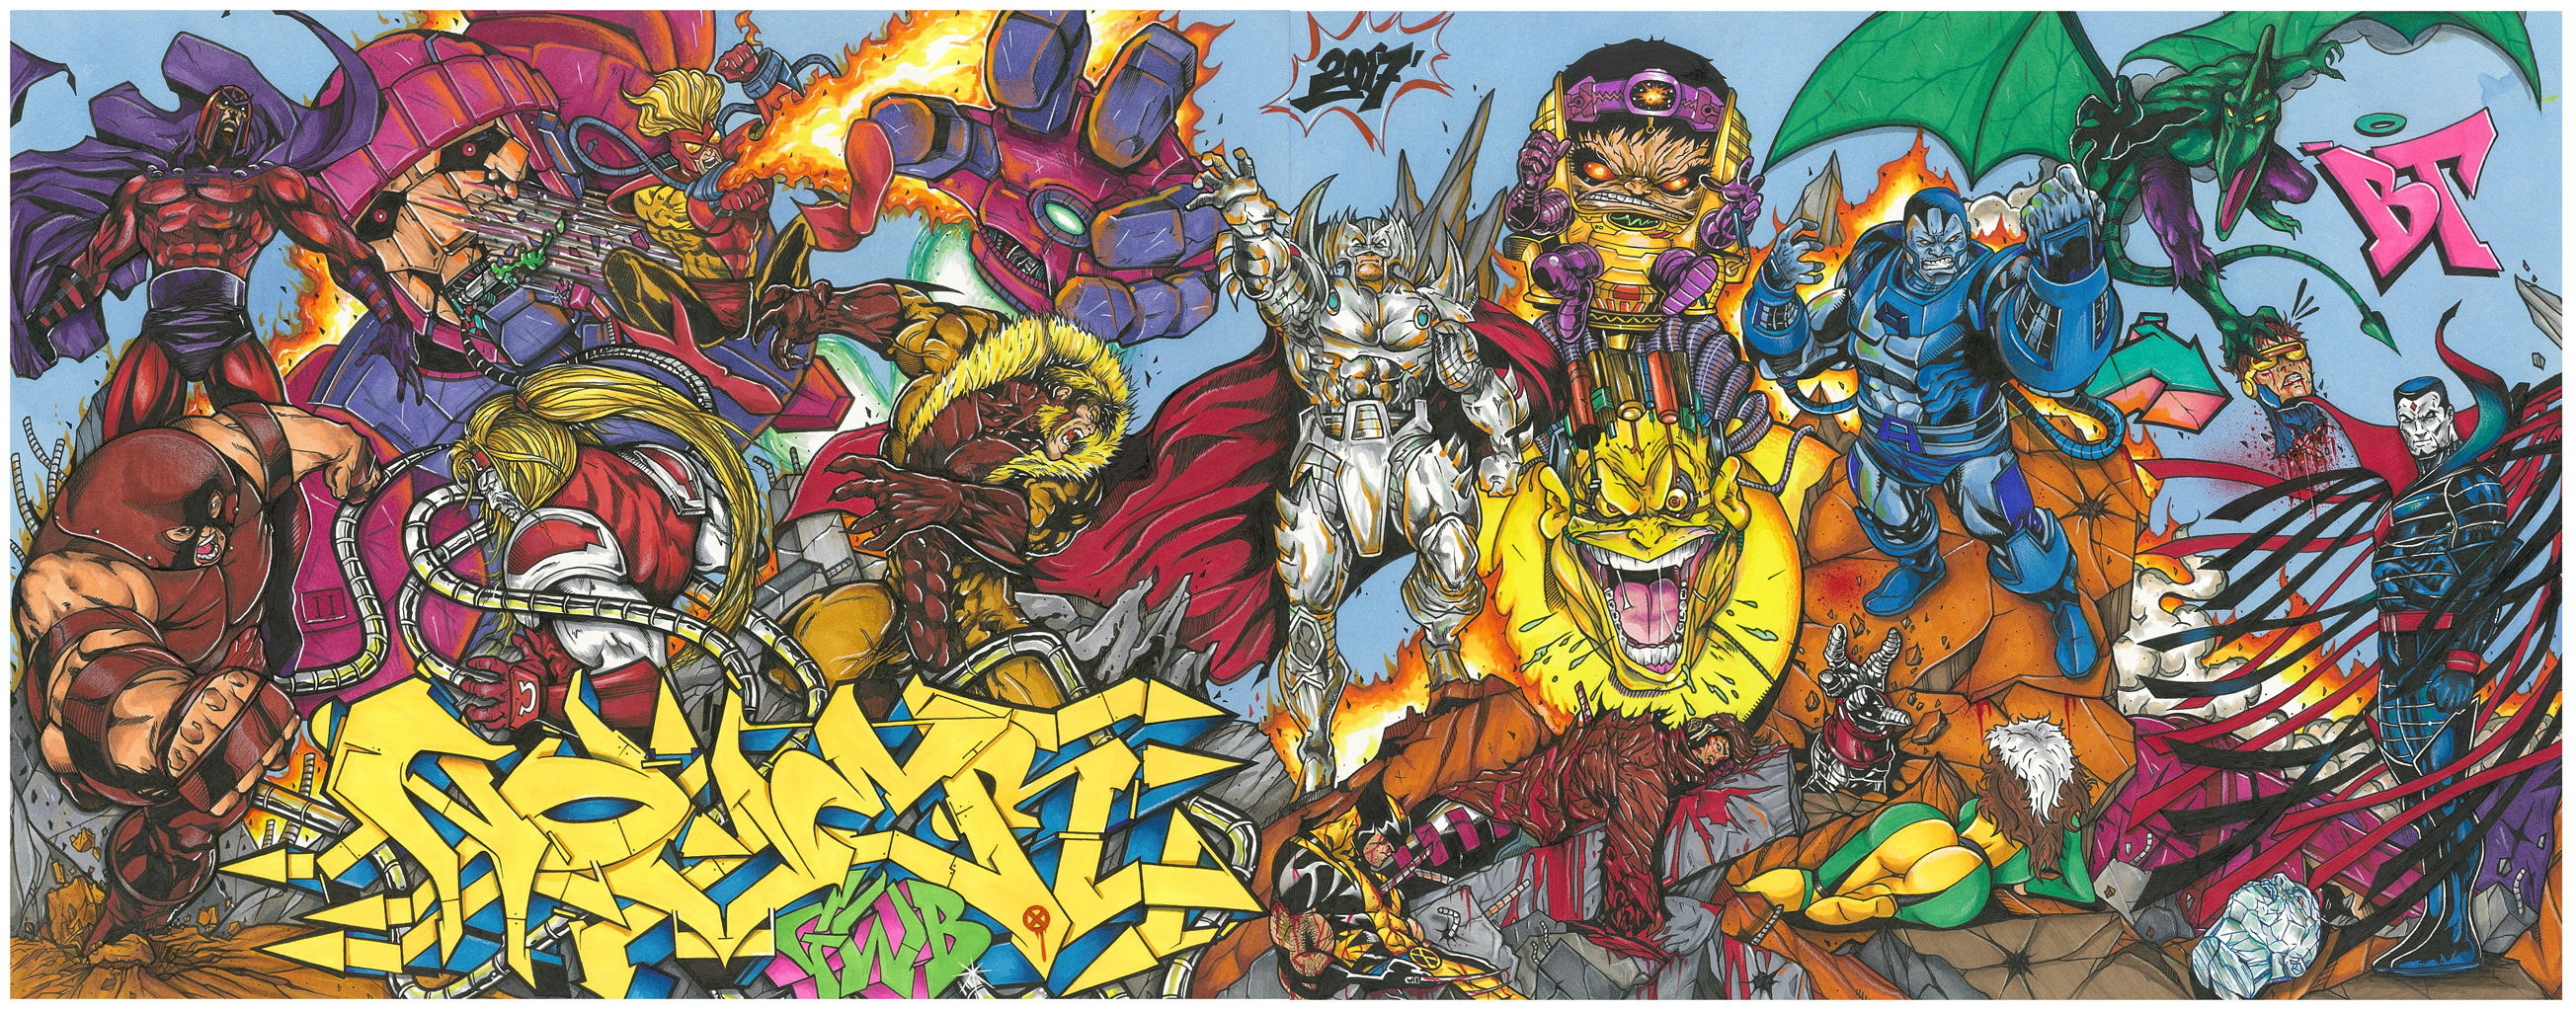 X-Men Villains by Nover, Markers & Pens on Paper, 2018.